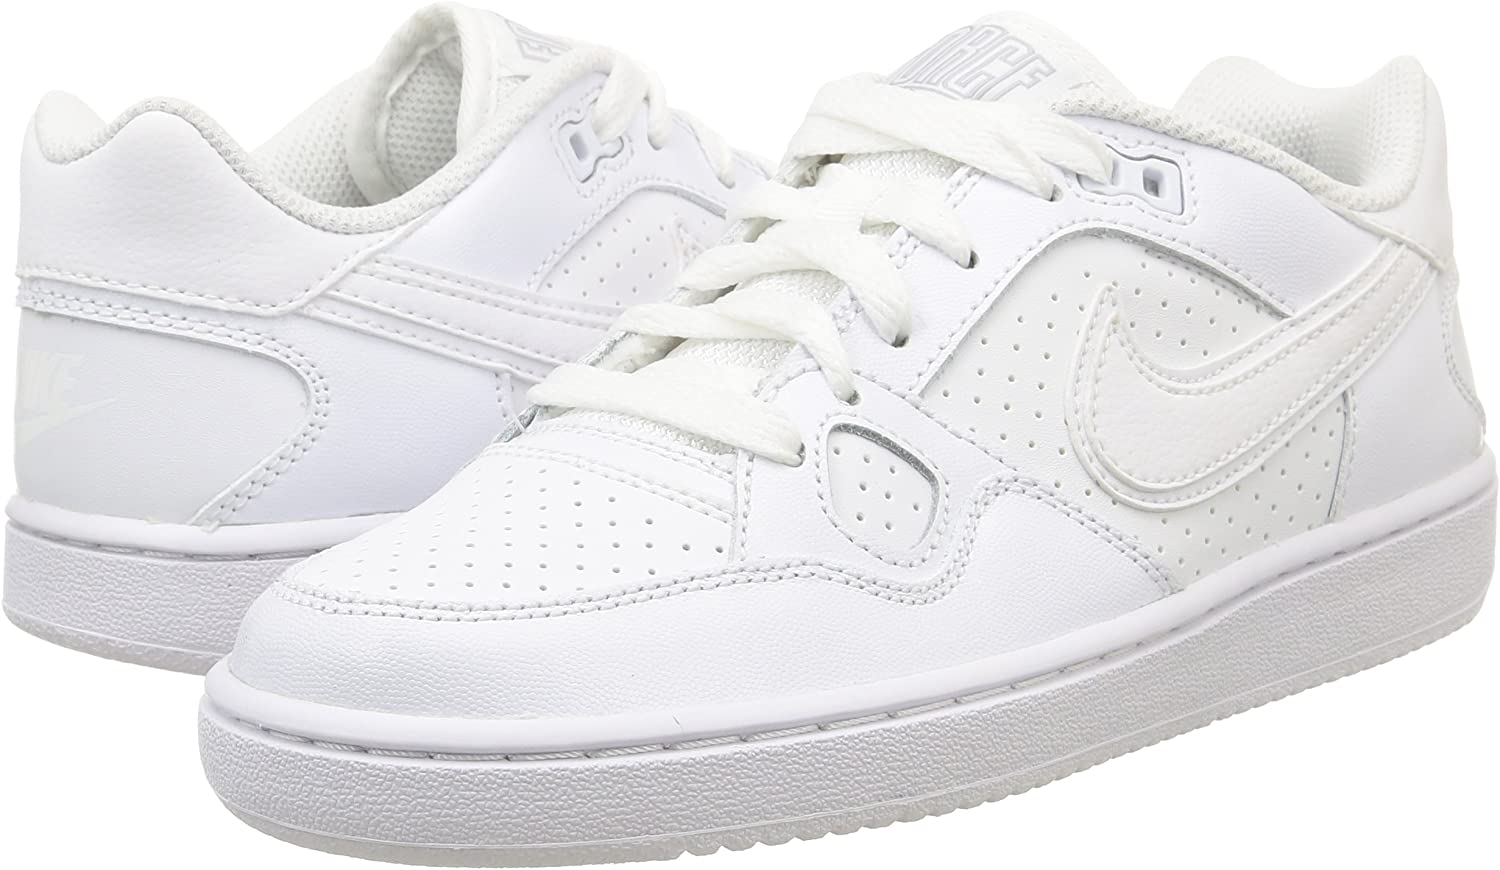 Nike Women's Son of Force Trainers Sneakers Shoe